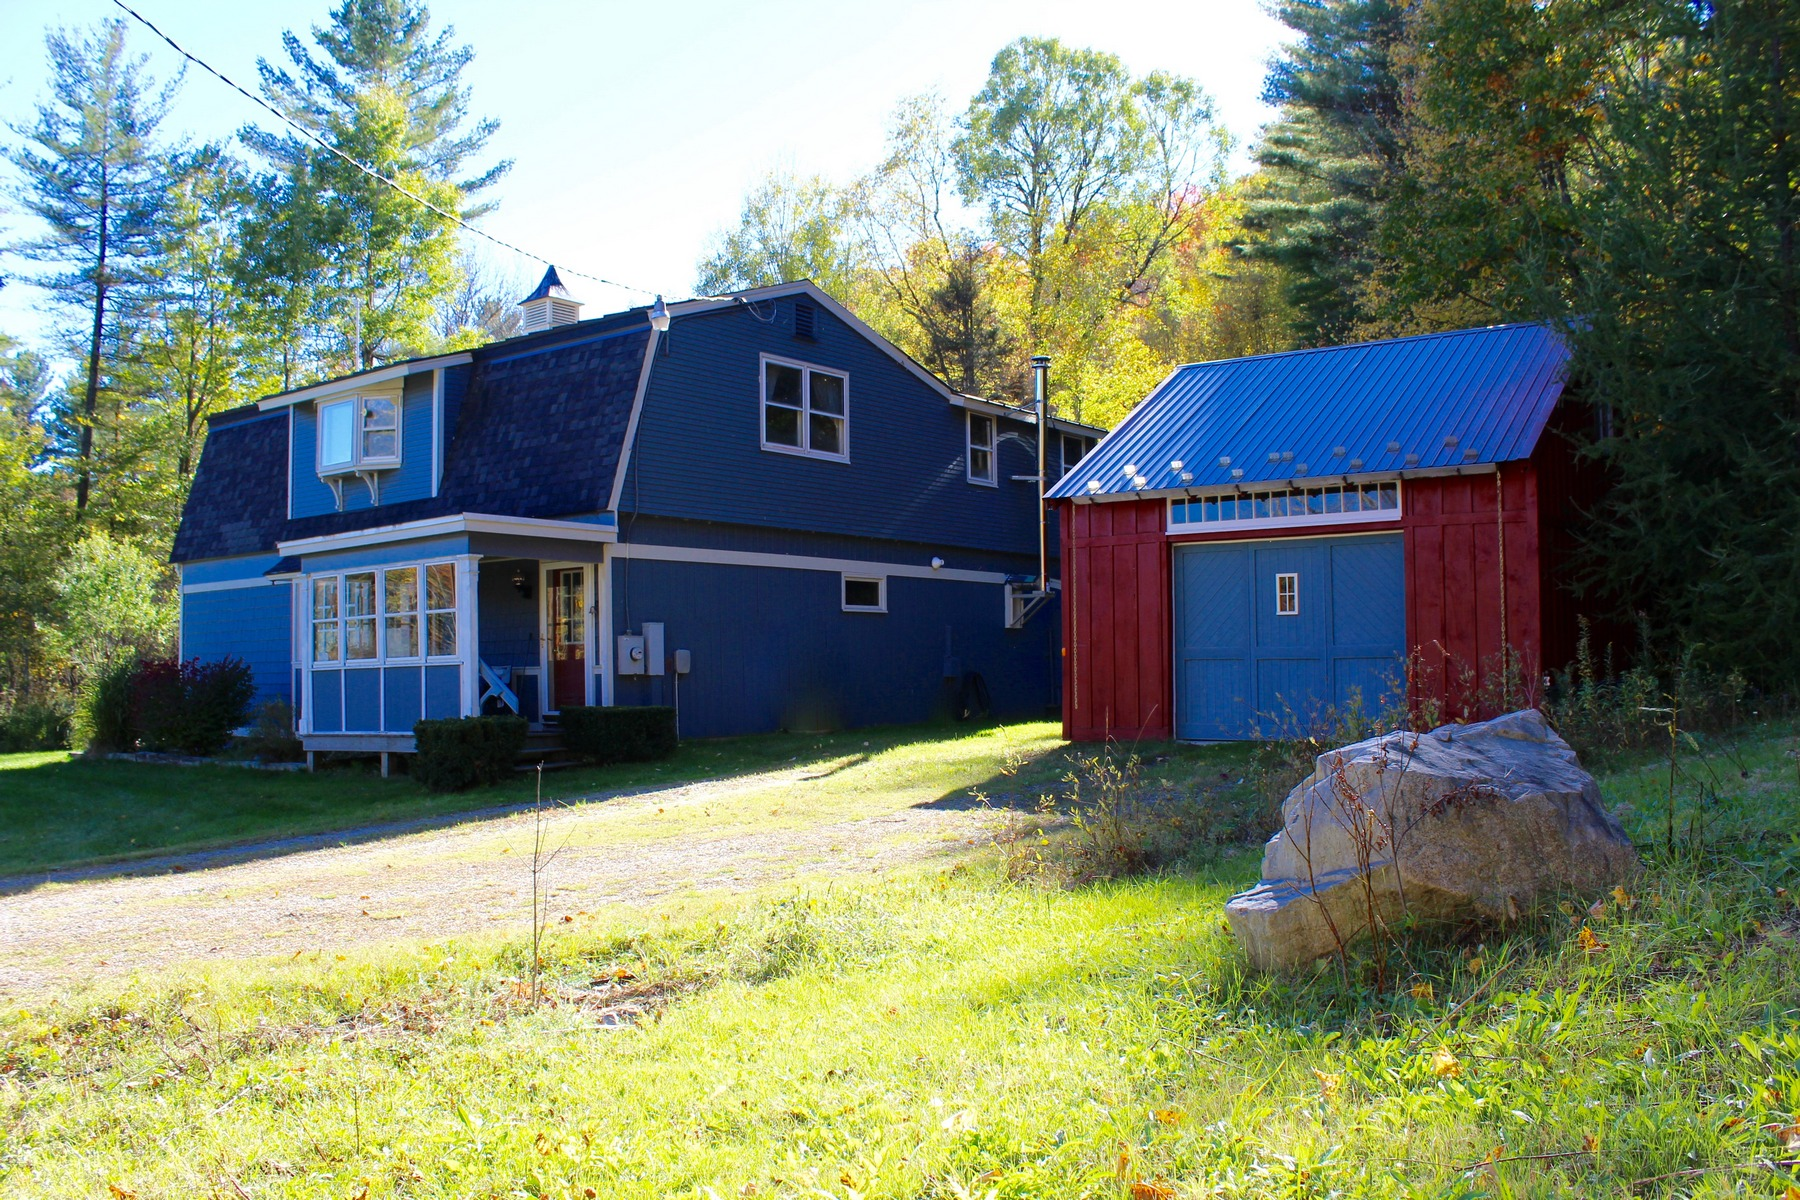 Single Family Home for Sale at 951 Parker, Wallingford Wallingford, Vermont, 05742 United States